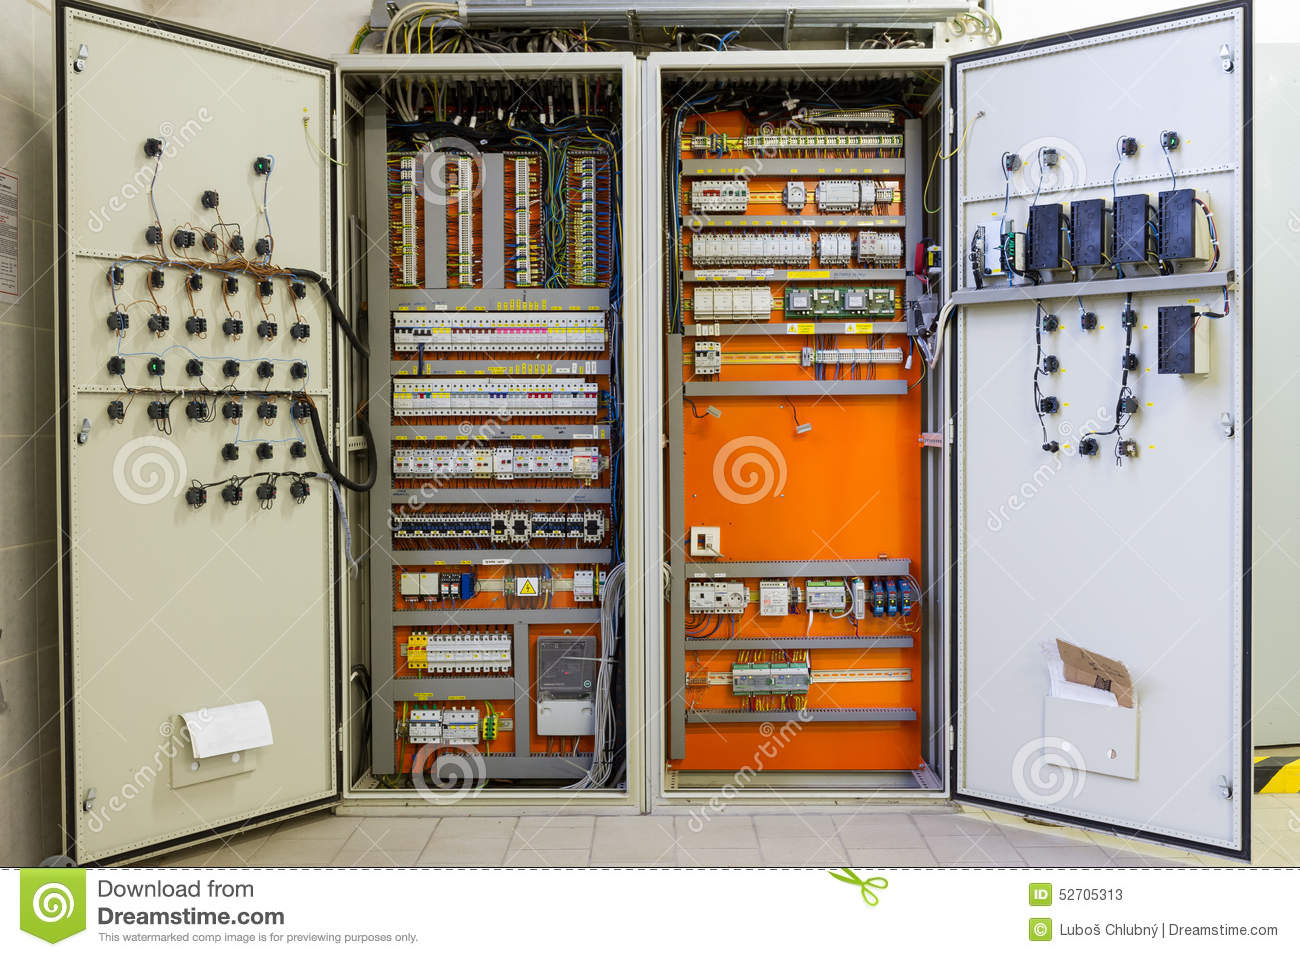 Industrial Fuse Box Blog About Wiring Diagrams Marine Grade Electricity Distribution With Wires Circuit Breakers And Fu High Voltage